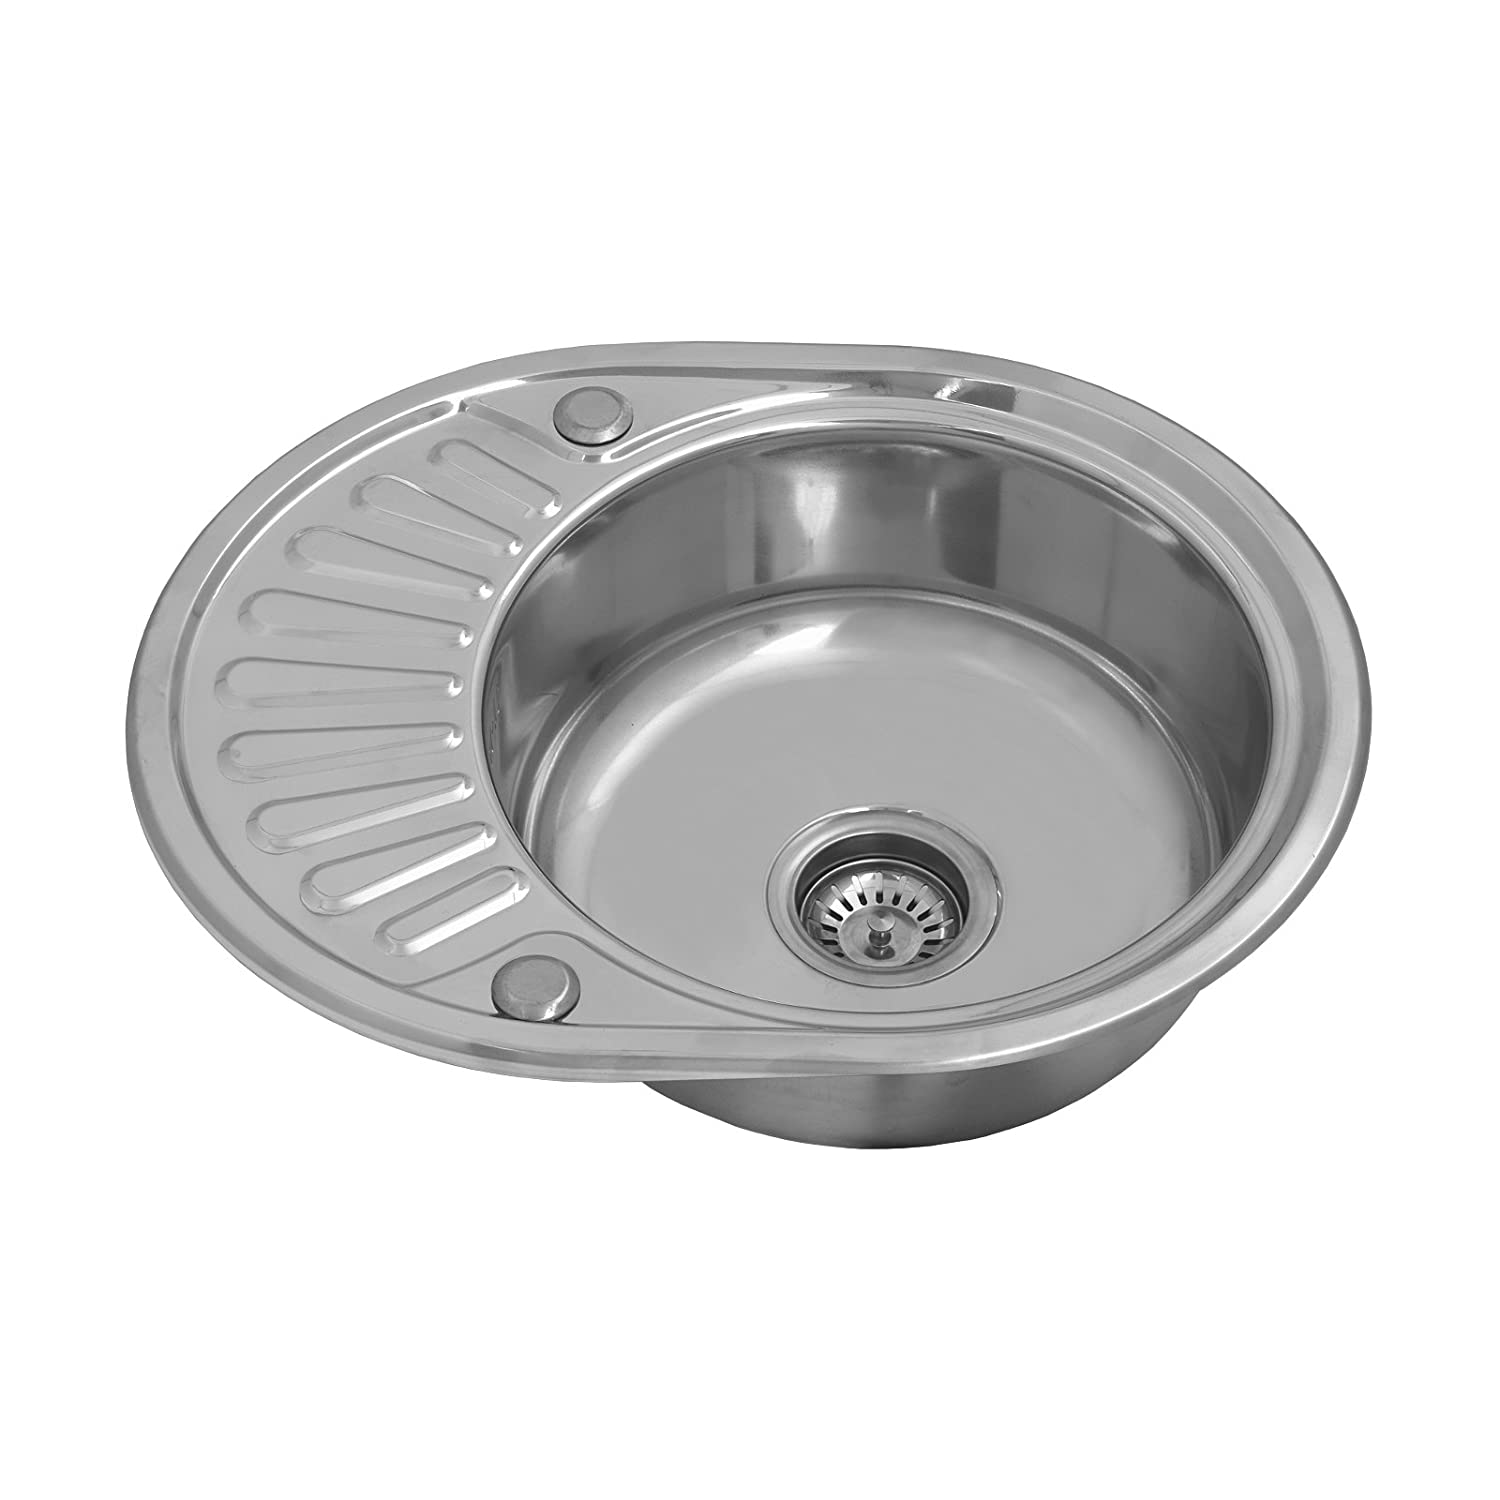 enki pact single 1 0 bowl inset round stainless steel kitchen